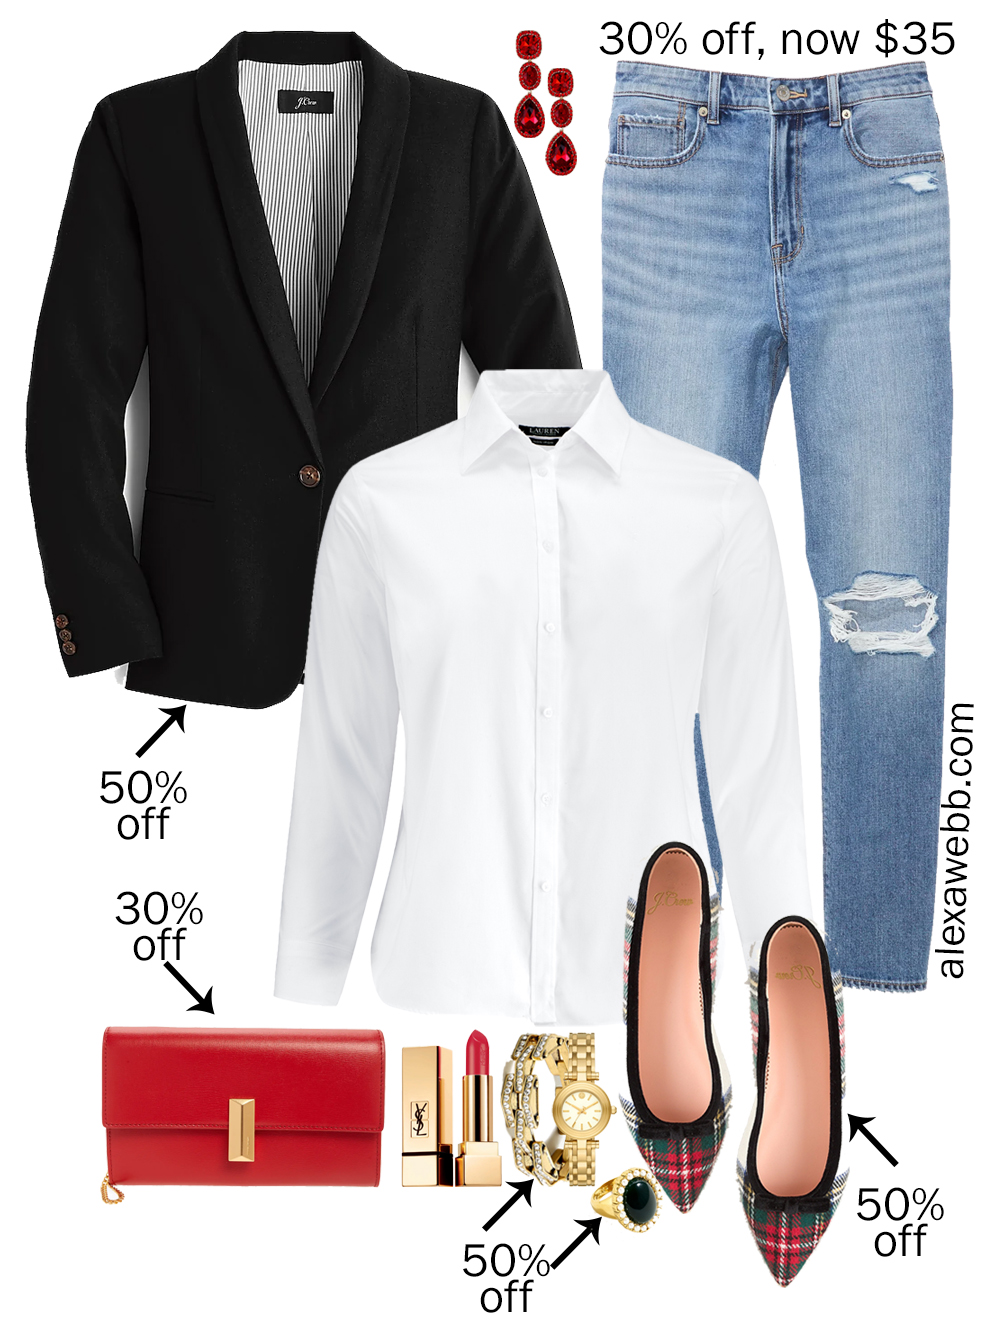 Plus Size Preppy Holiday Outfits with black blazer, white button down, plaid flats, and Mom jeans for Christmas - Alexa Webb #plussize #alexawebb